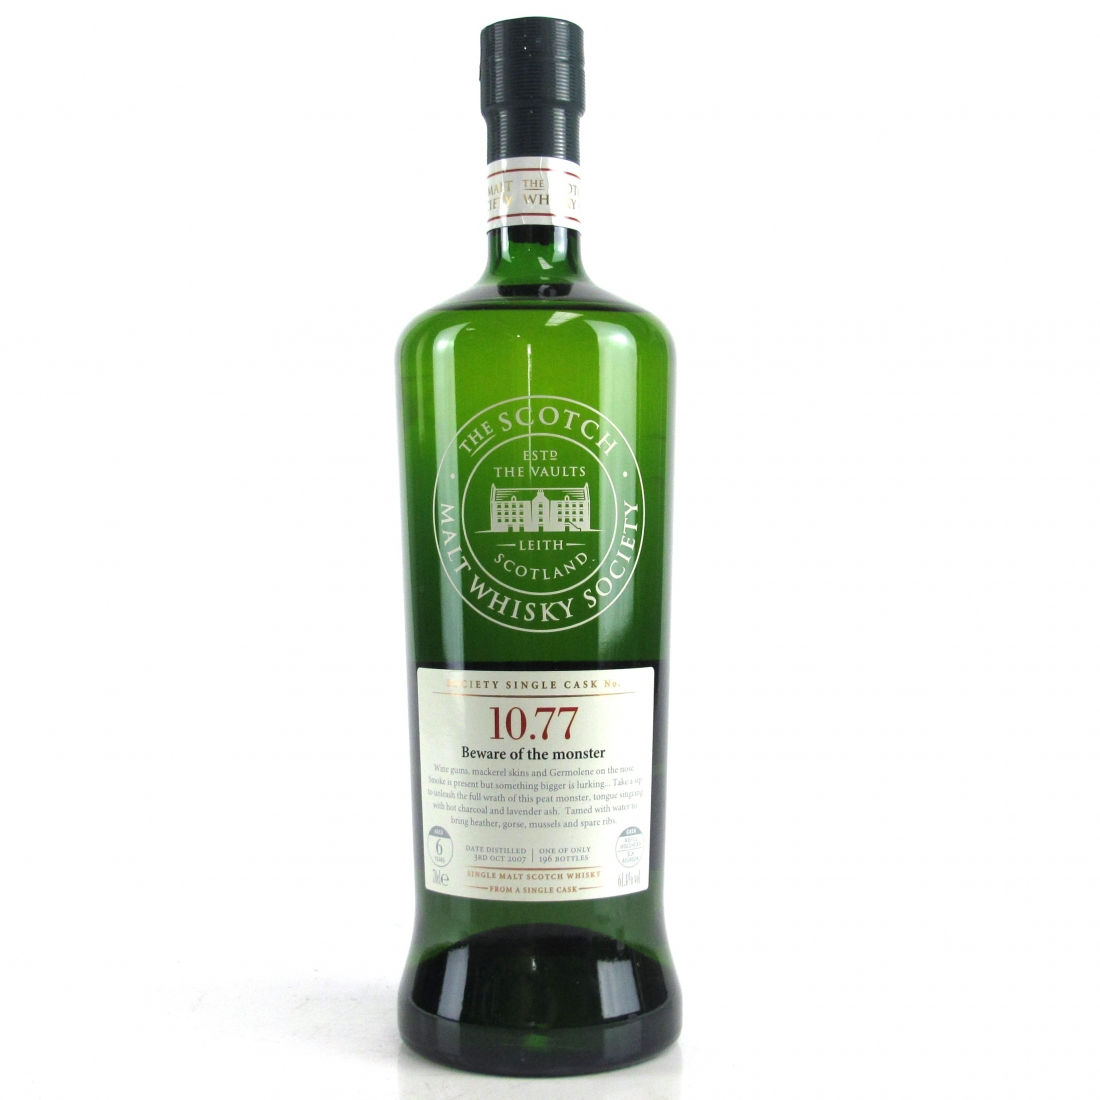 Bunnahabhain 2007 SMWS 6 Year Old 10.77